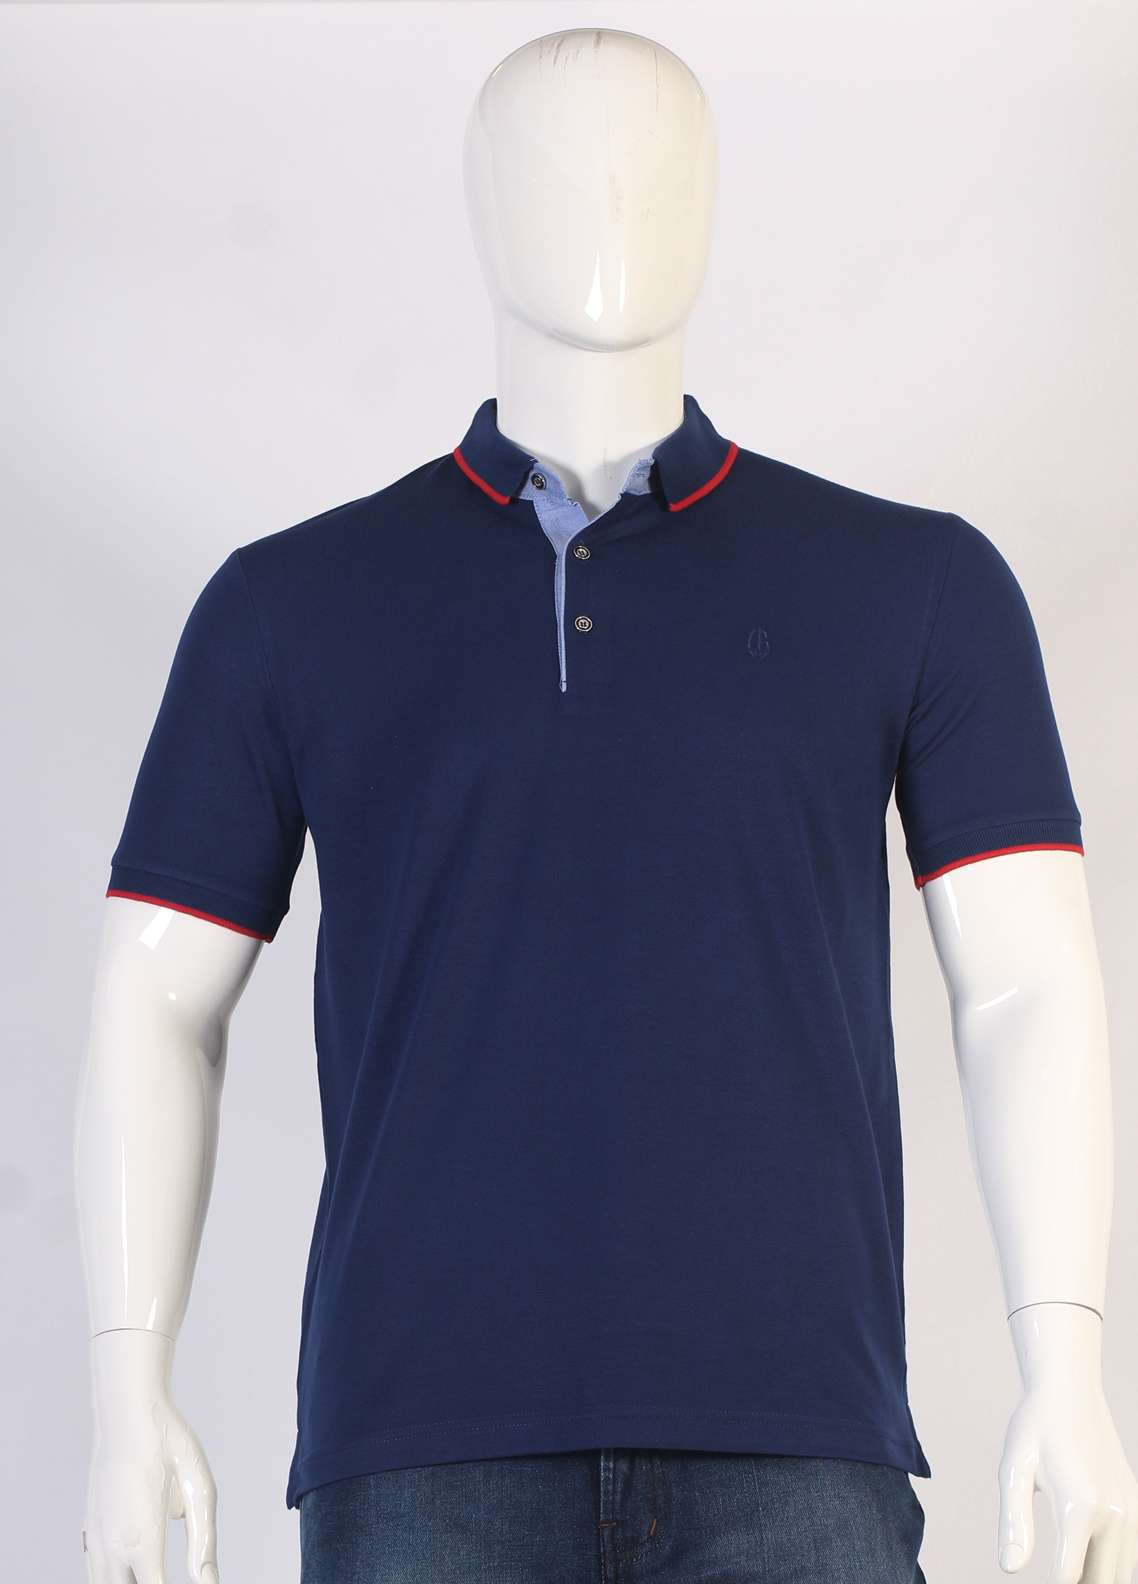 Sanaulla Exclusive Range Jersey Polo T-Shirts for Men - Navy Blue TKM18S 317-01